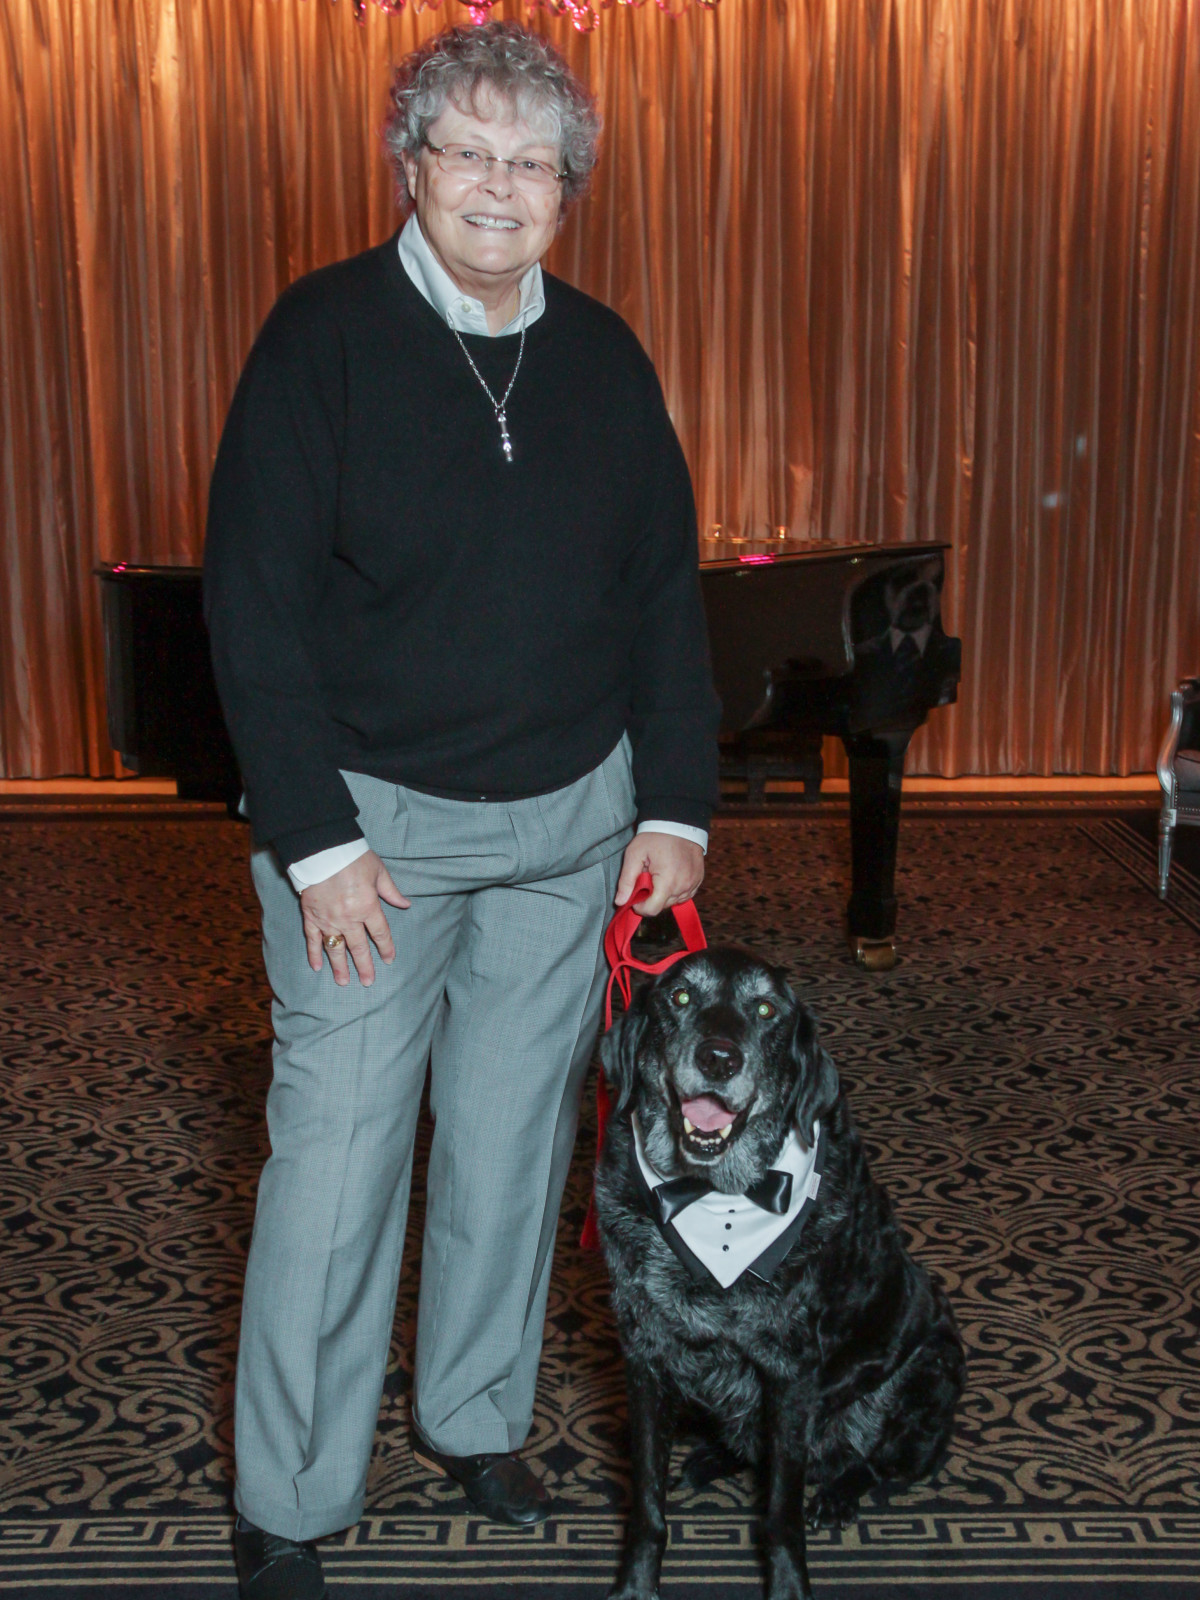 Doggie fashion show winner Pat Wild and Willie at Interfaith Ministries brunch